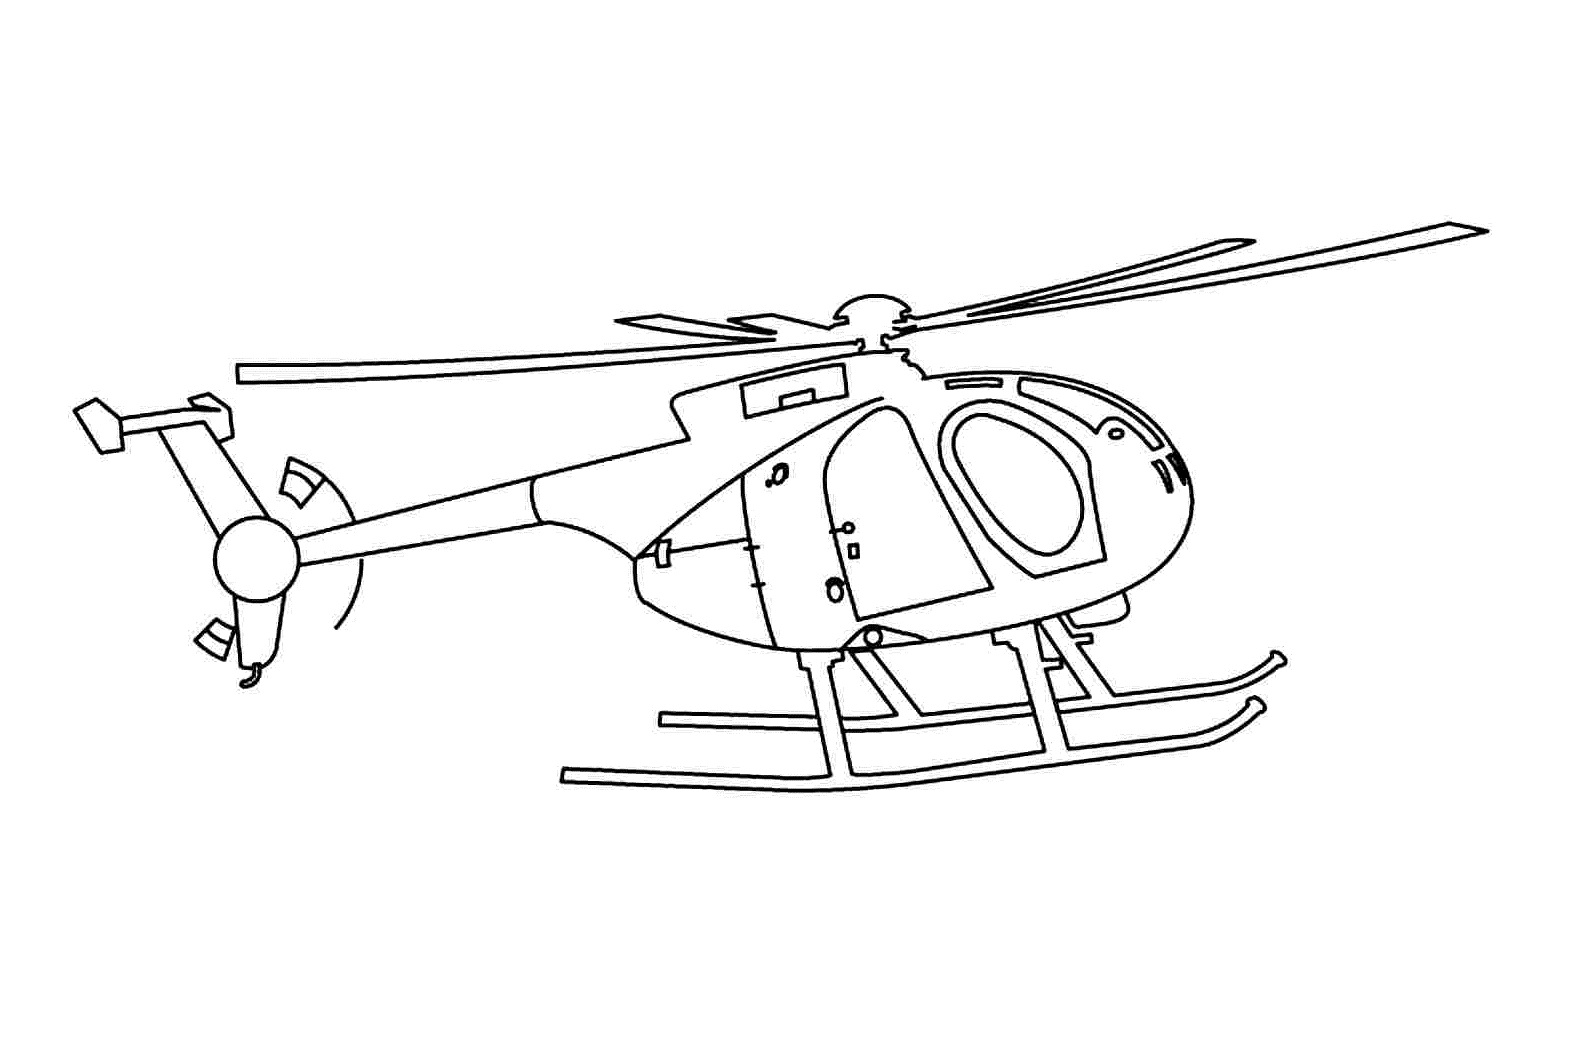 helicopter colouring pictures free printable helicopter coloring pages for kids pictures helicopter colouring